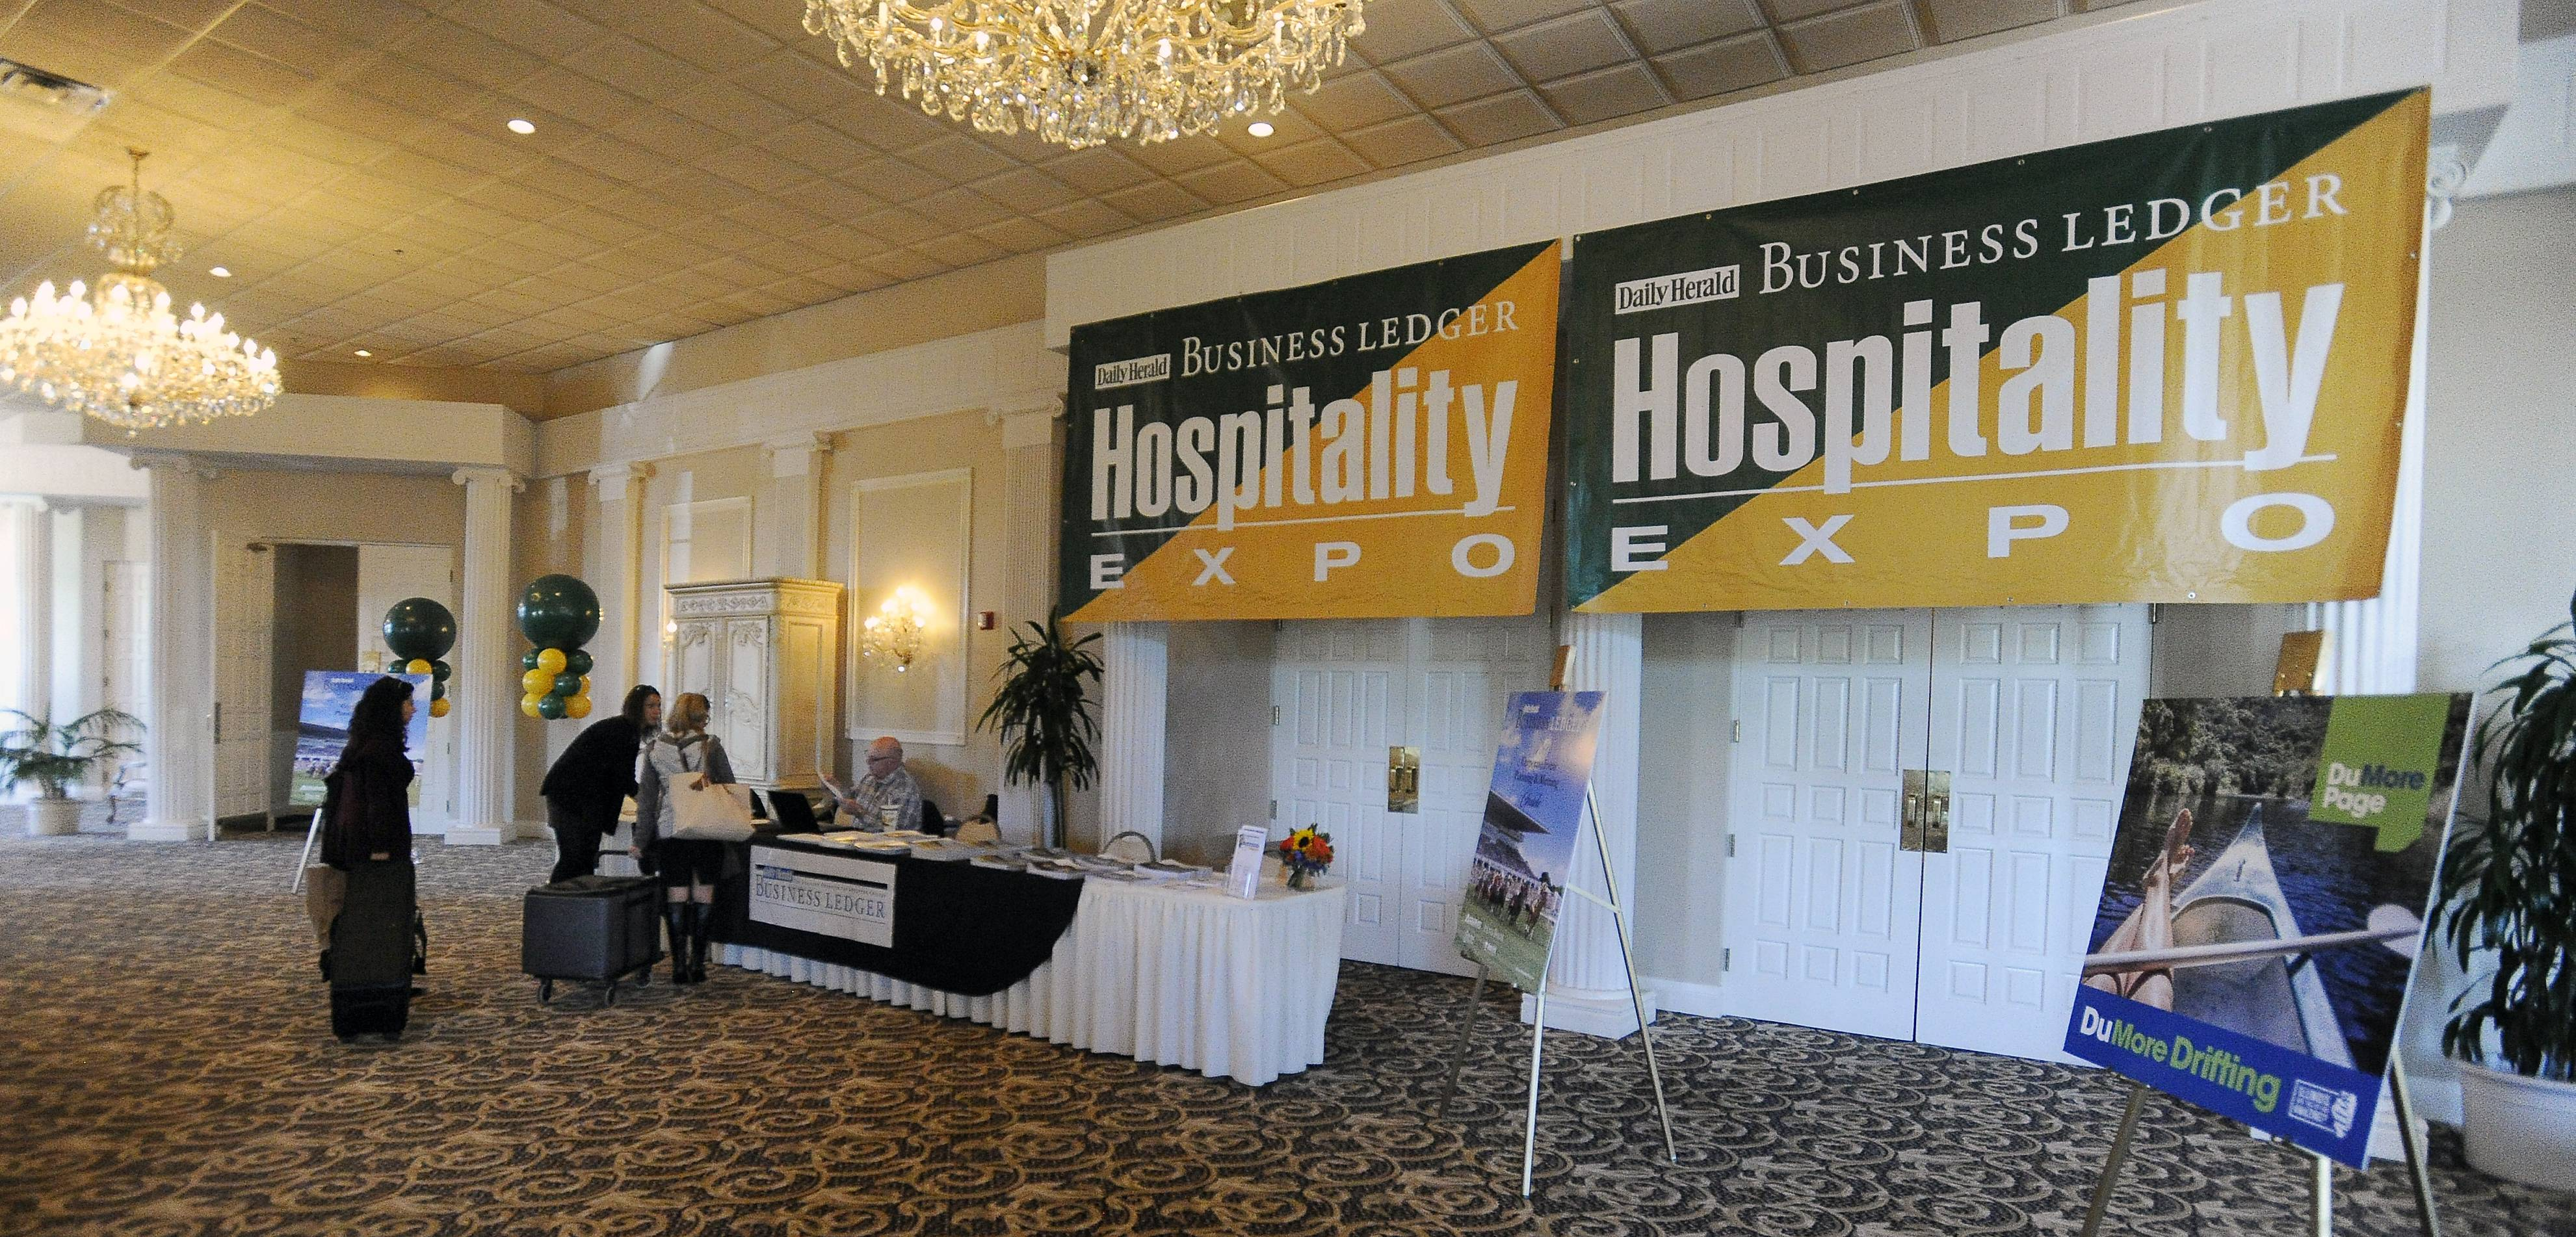 More than 80 vendors took part in the Daily Herald Business Ledger's DuPage Hospitality Expo at Abbington Distinctive Banquets in Glen Ellyn.